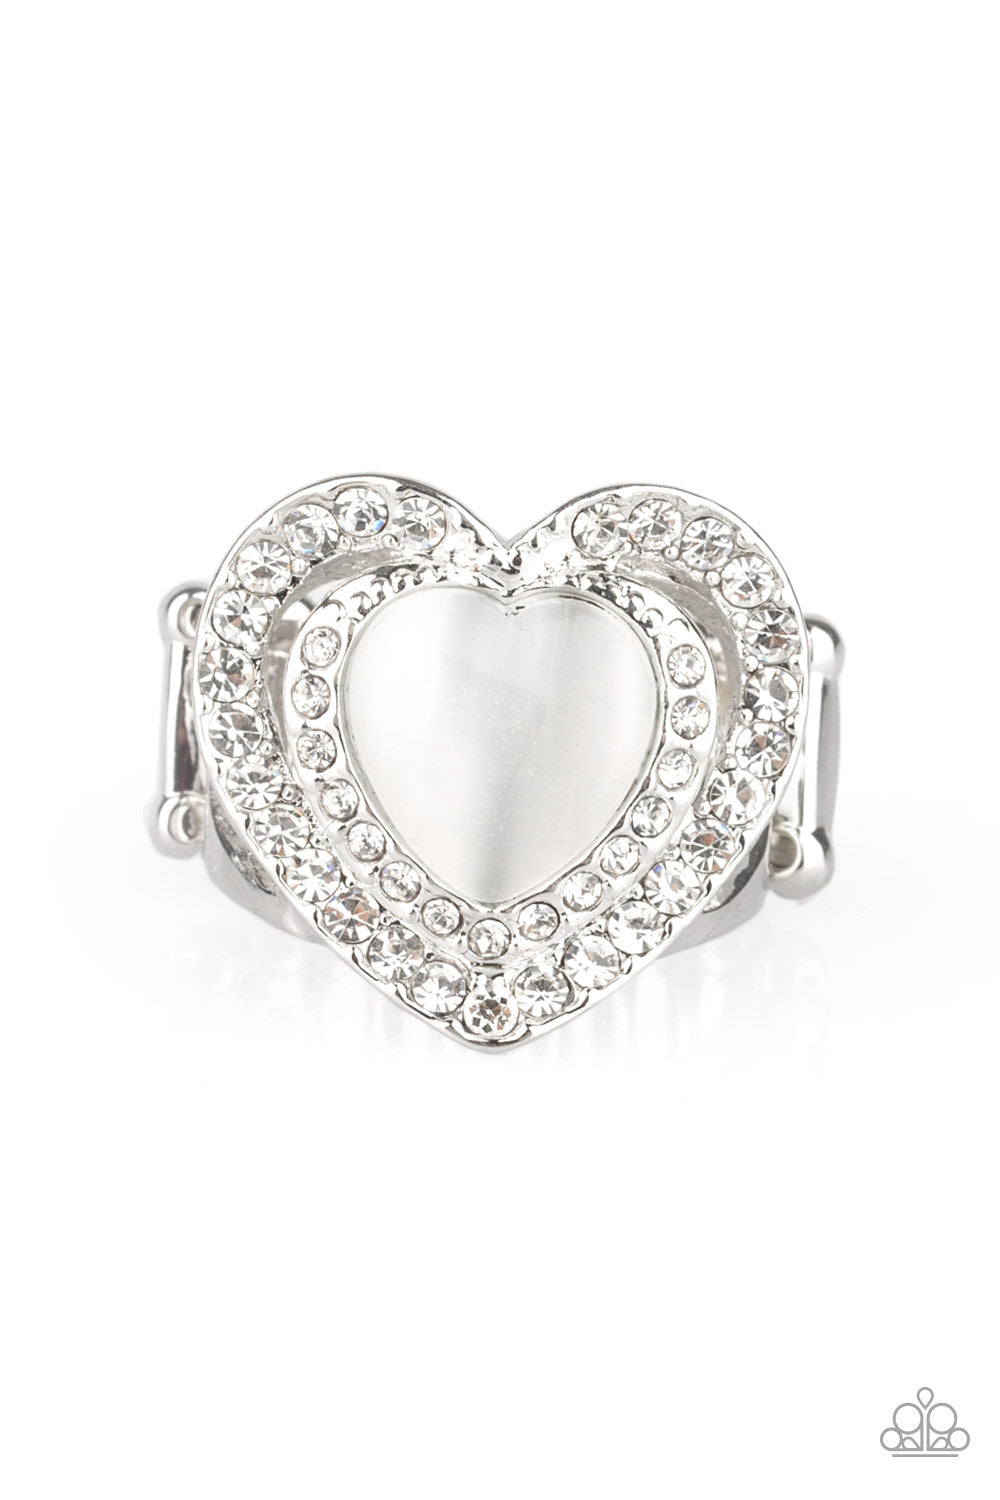 five-dollar-jewelry-what-the-heart-wants-white-ring-paparazzi-accessories